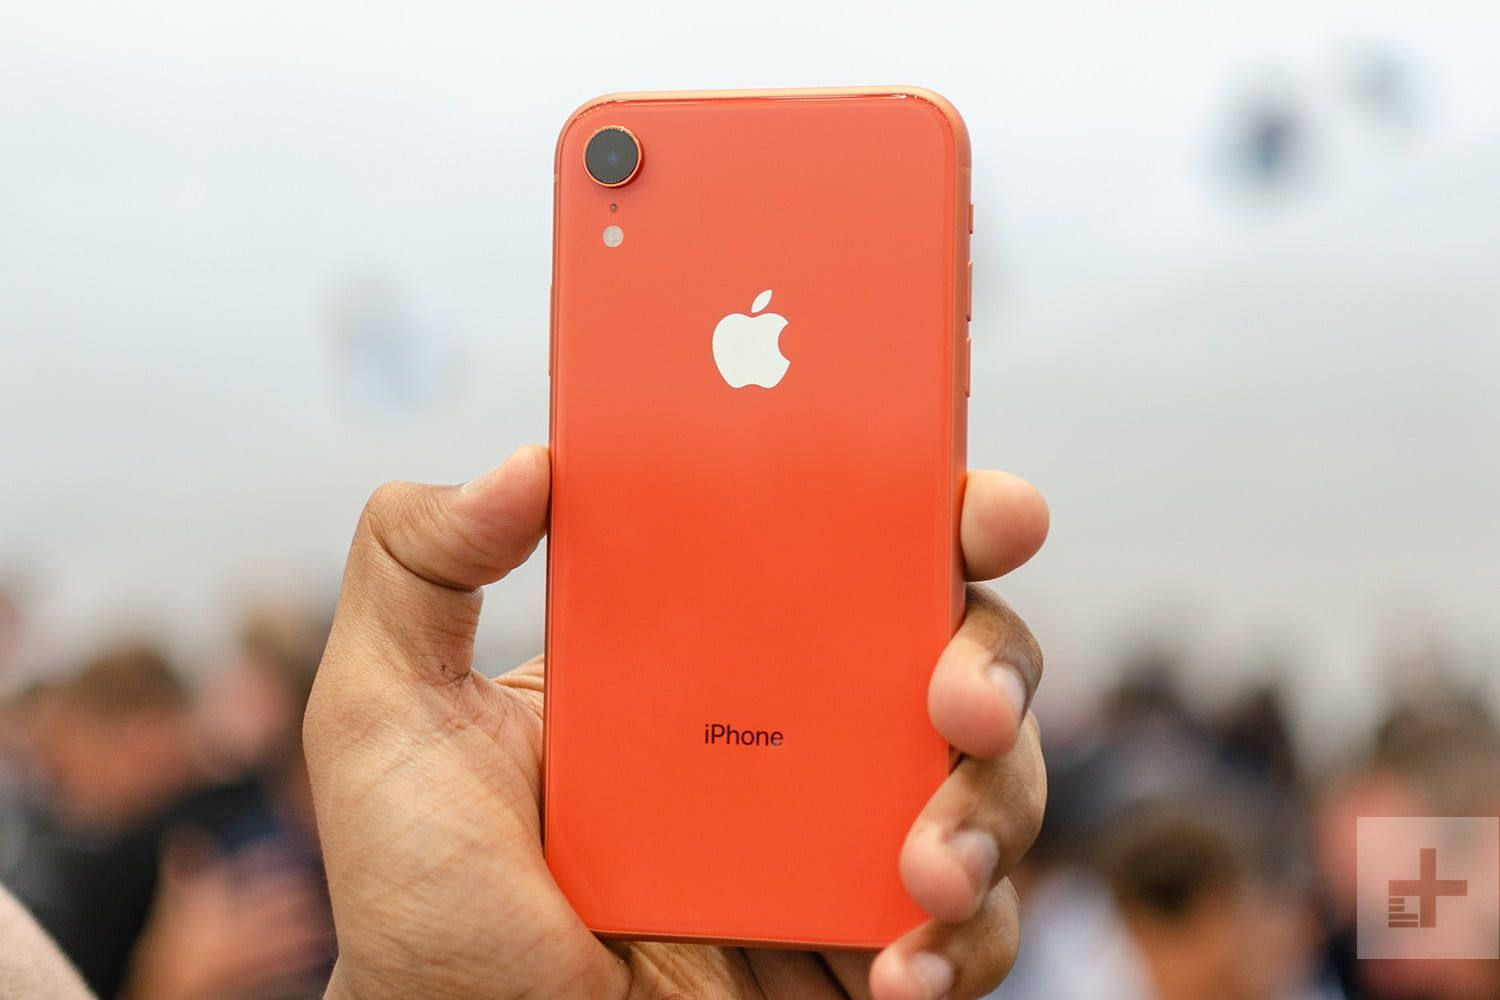 Best Replica/Clone/Fake iPhone XR with Wireless Charging